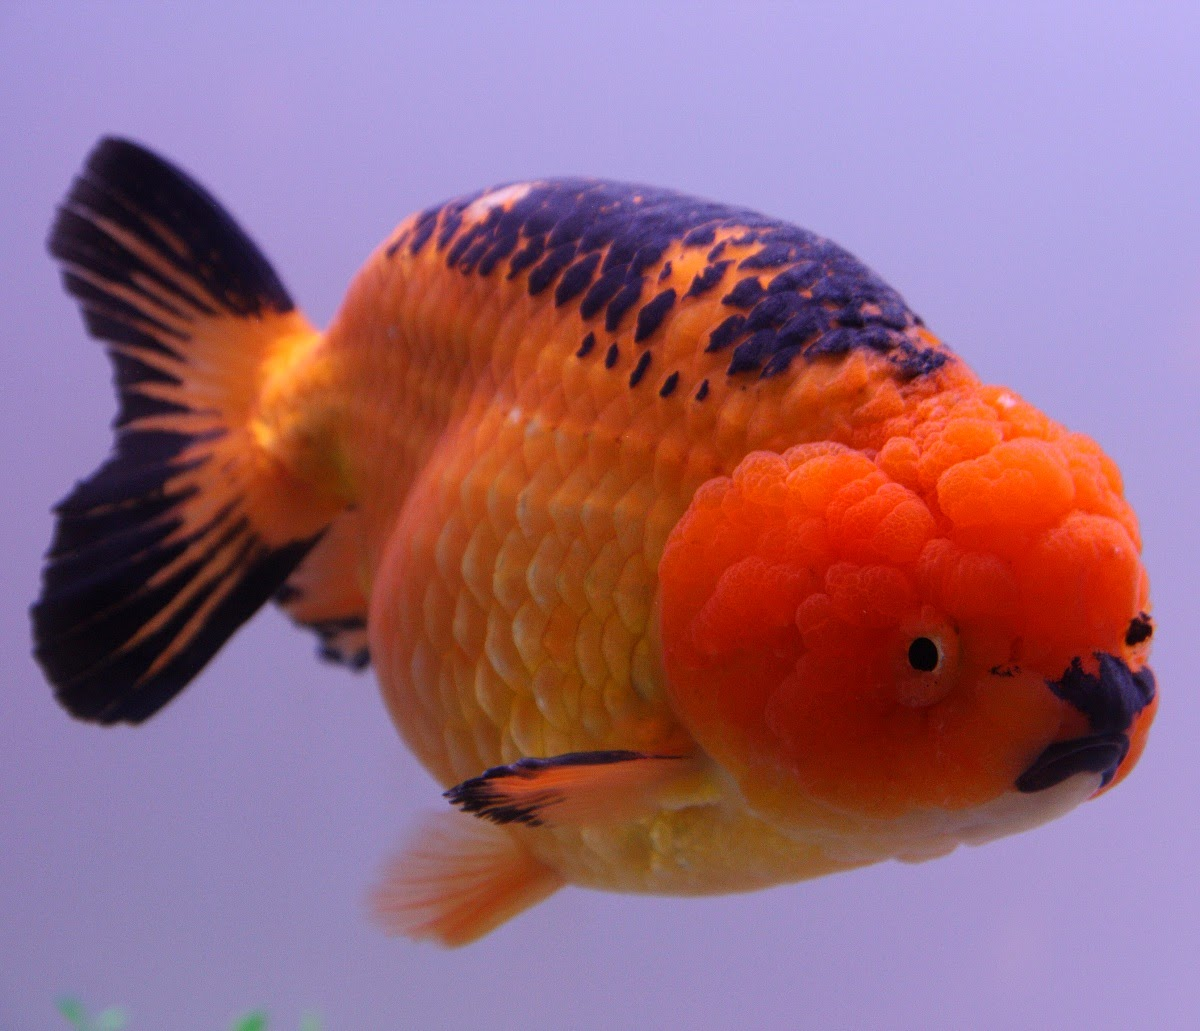 Blok888 top 10 most beautiful freshwater fish in the world 1 for Freshwater koi fish